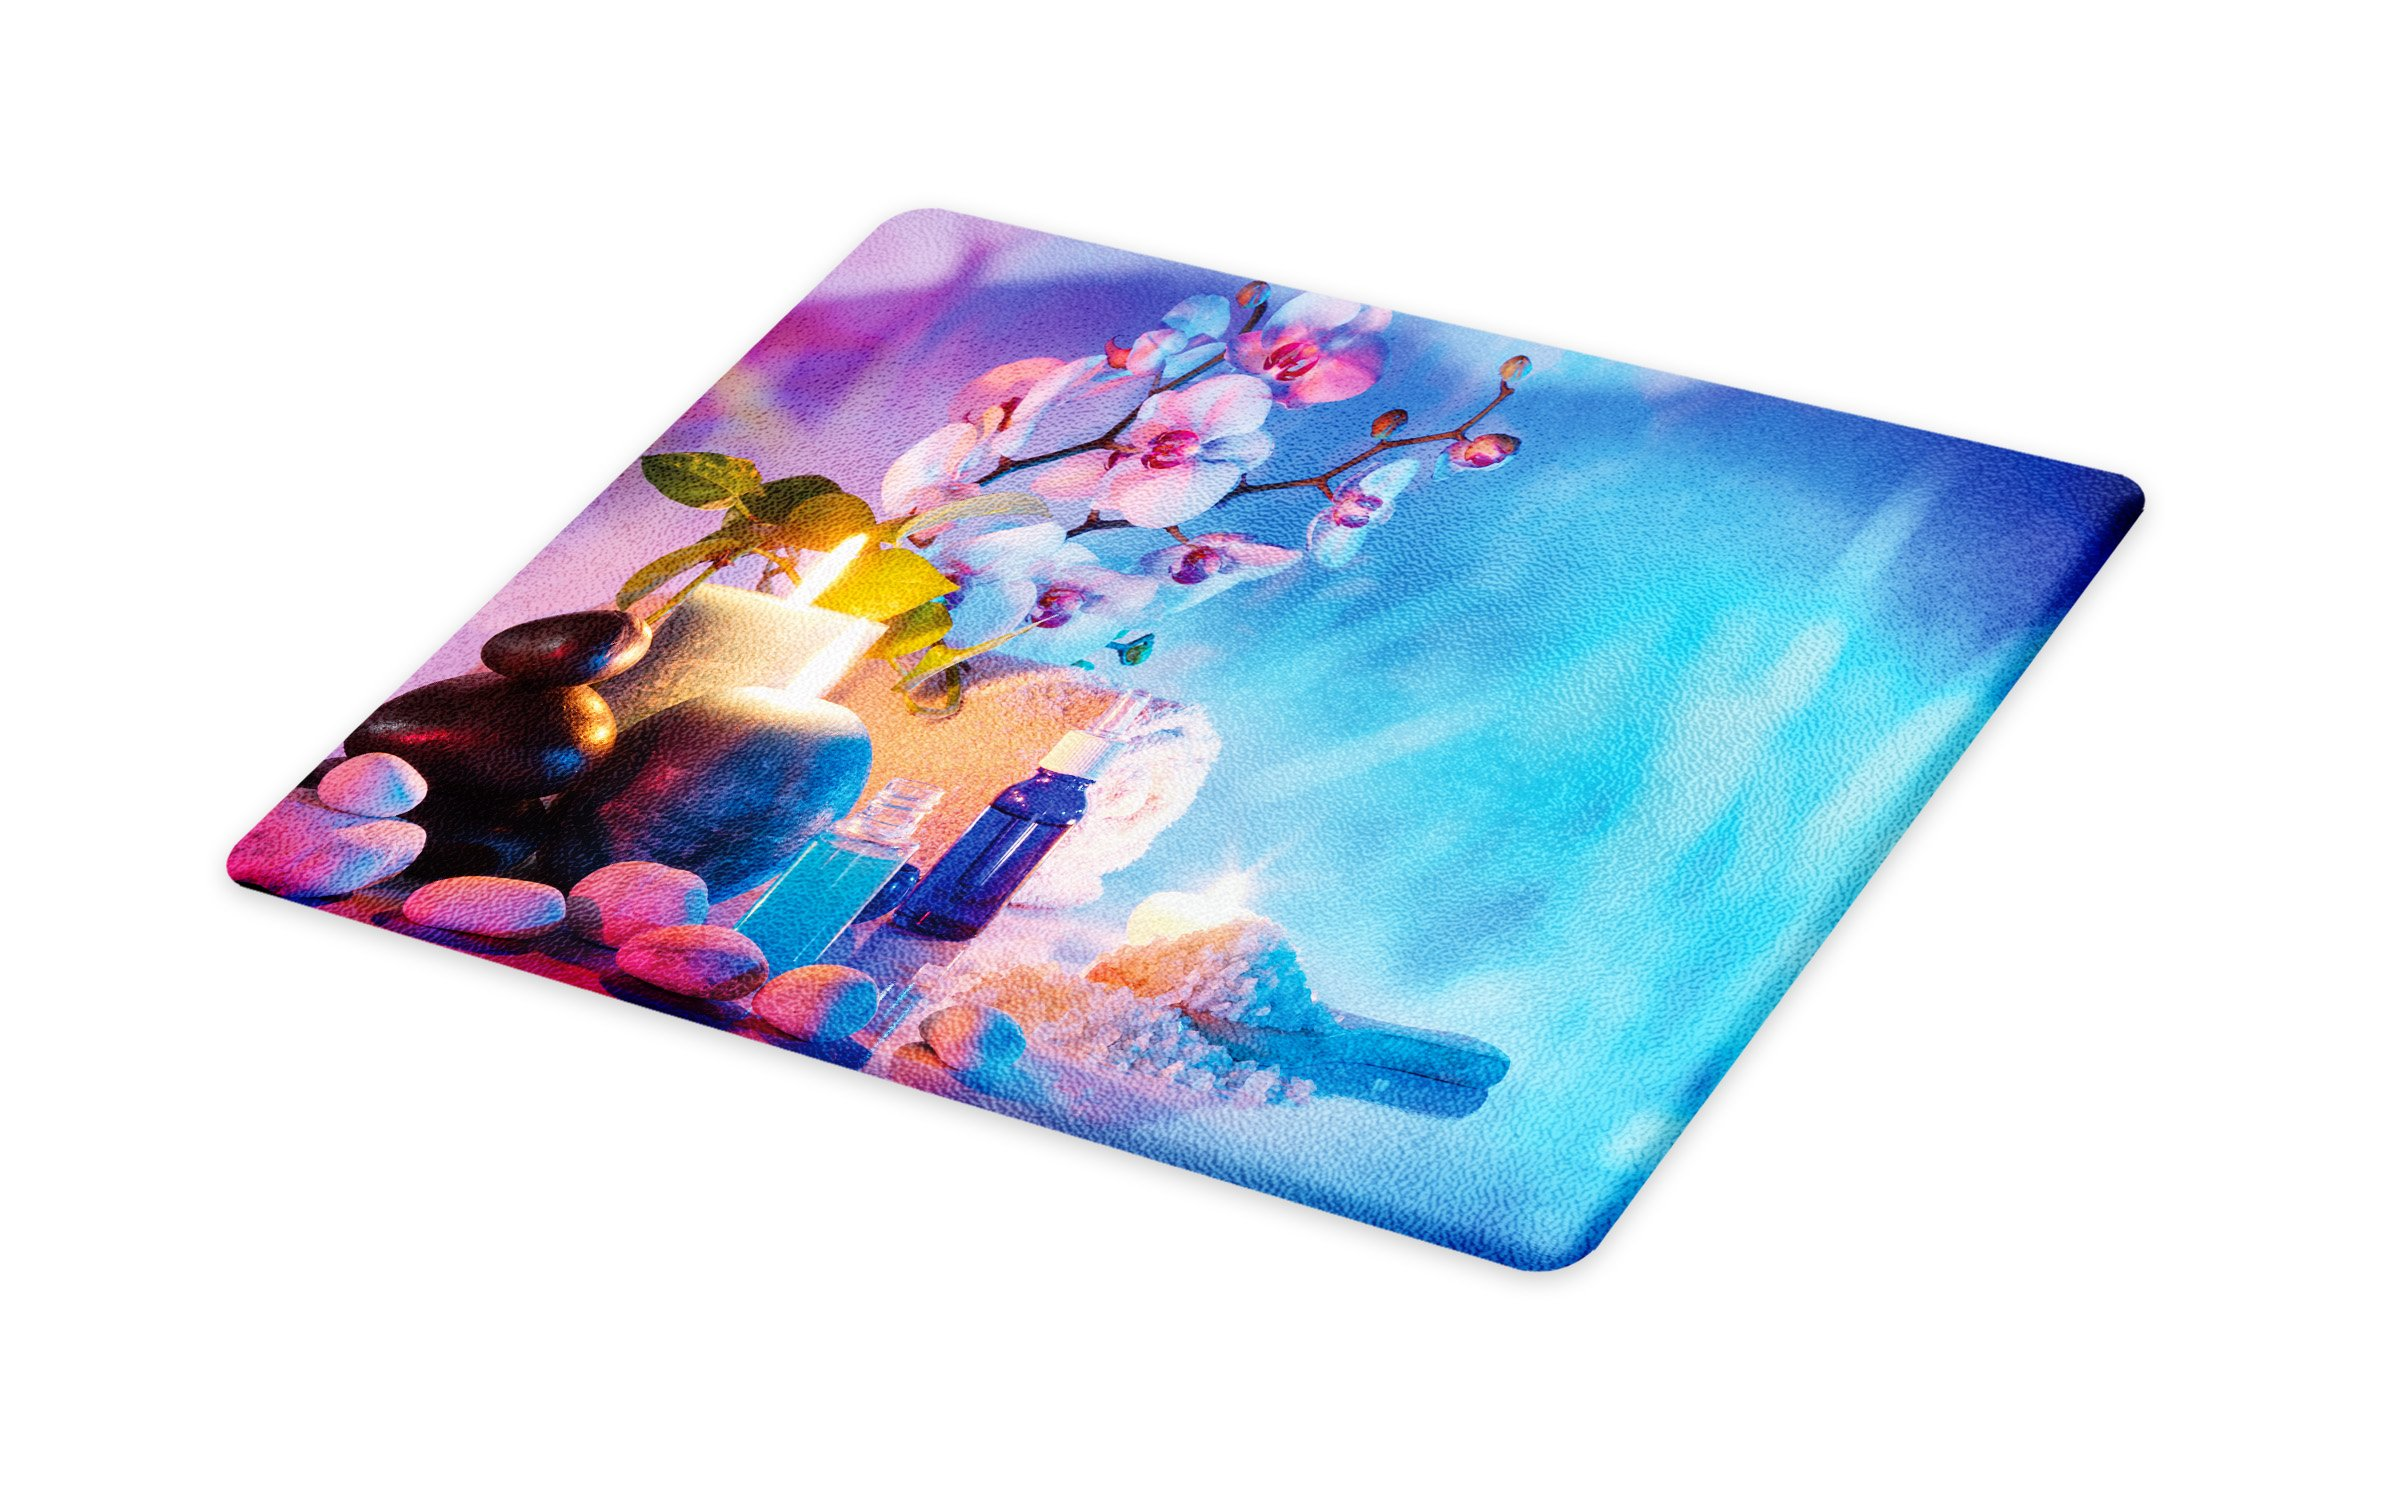 Lunarable Spa Cutting Board, Preparation for Bath Massage in Garden with Stones Flowers Essential Oils Aromatherapy, Decorative Tempered Glass Cutting and Serving Board, Small Size, Pink Blue